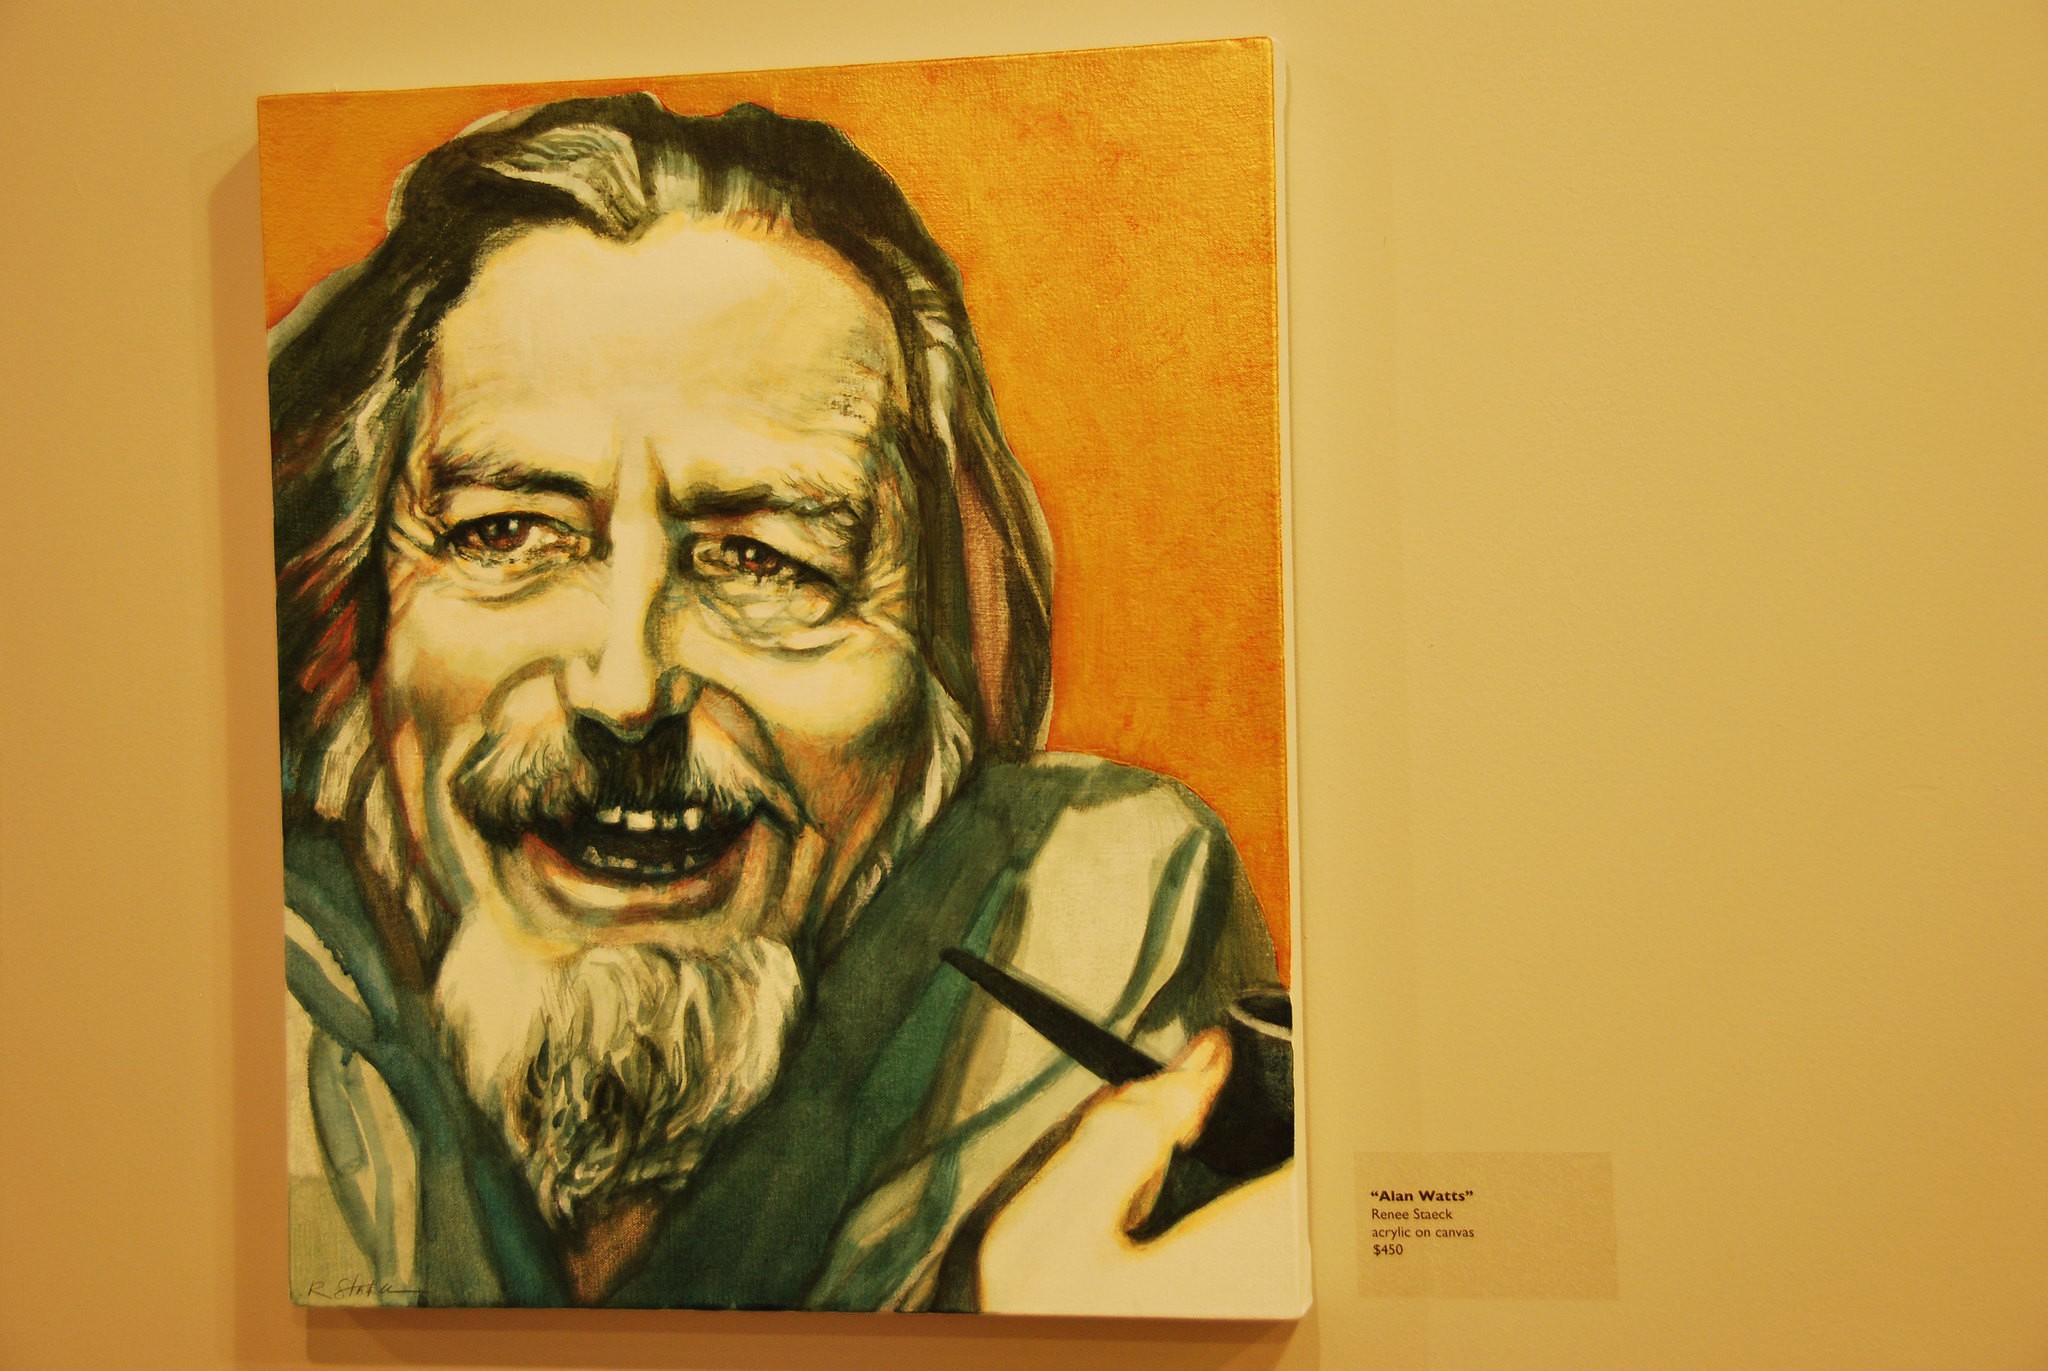 A Painting of the philosopher Alan Watts on a gallery wall